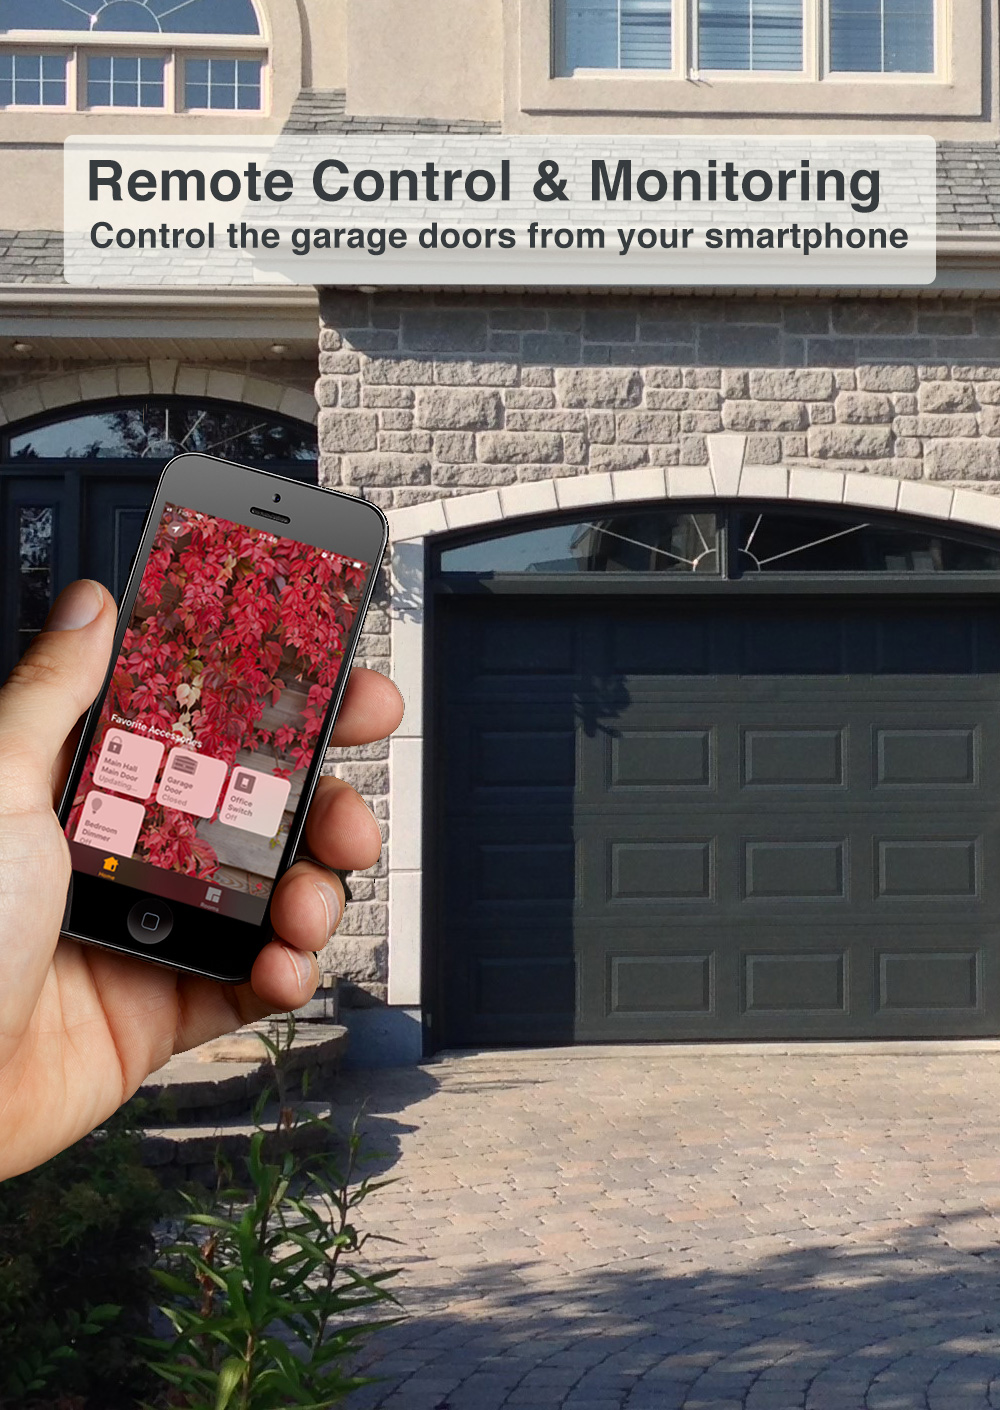 Smart home helps to provide a higher level of security by monitoring the garage doors